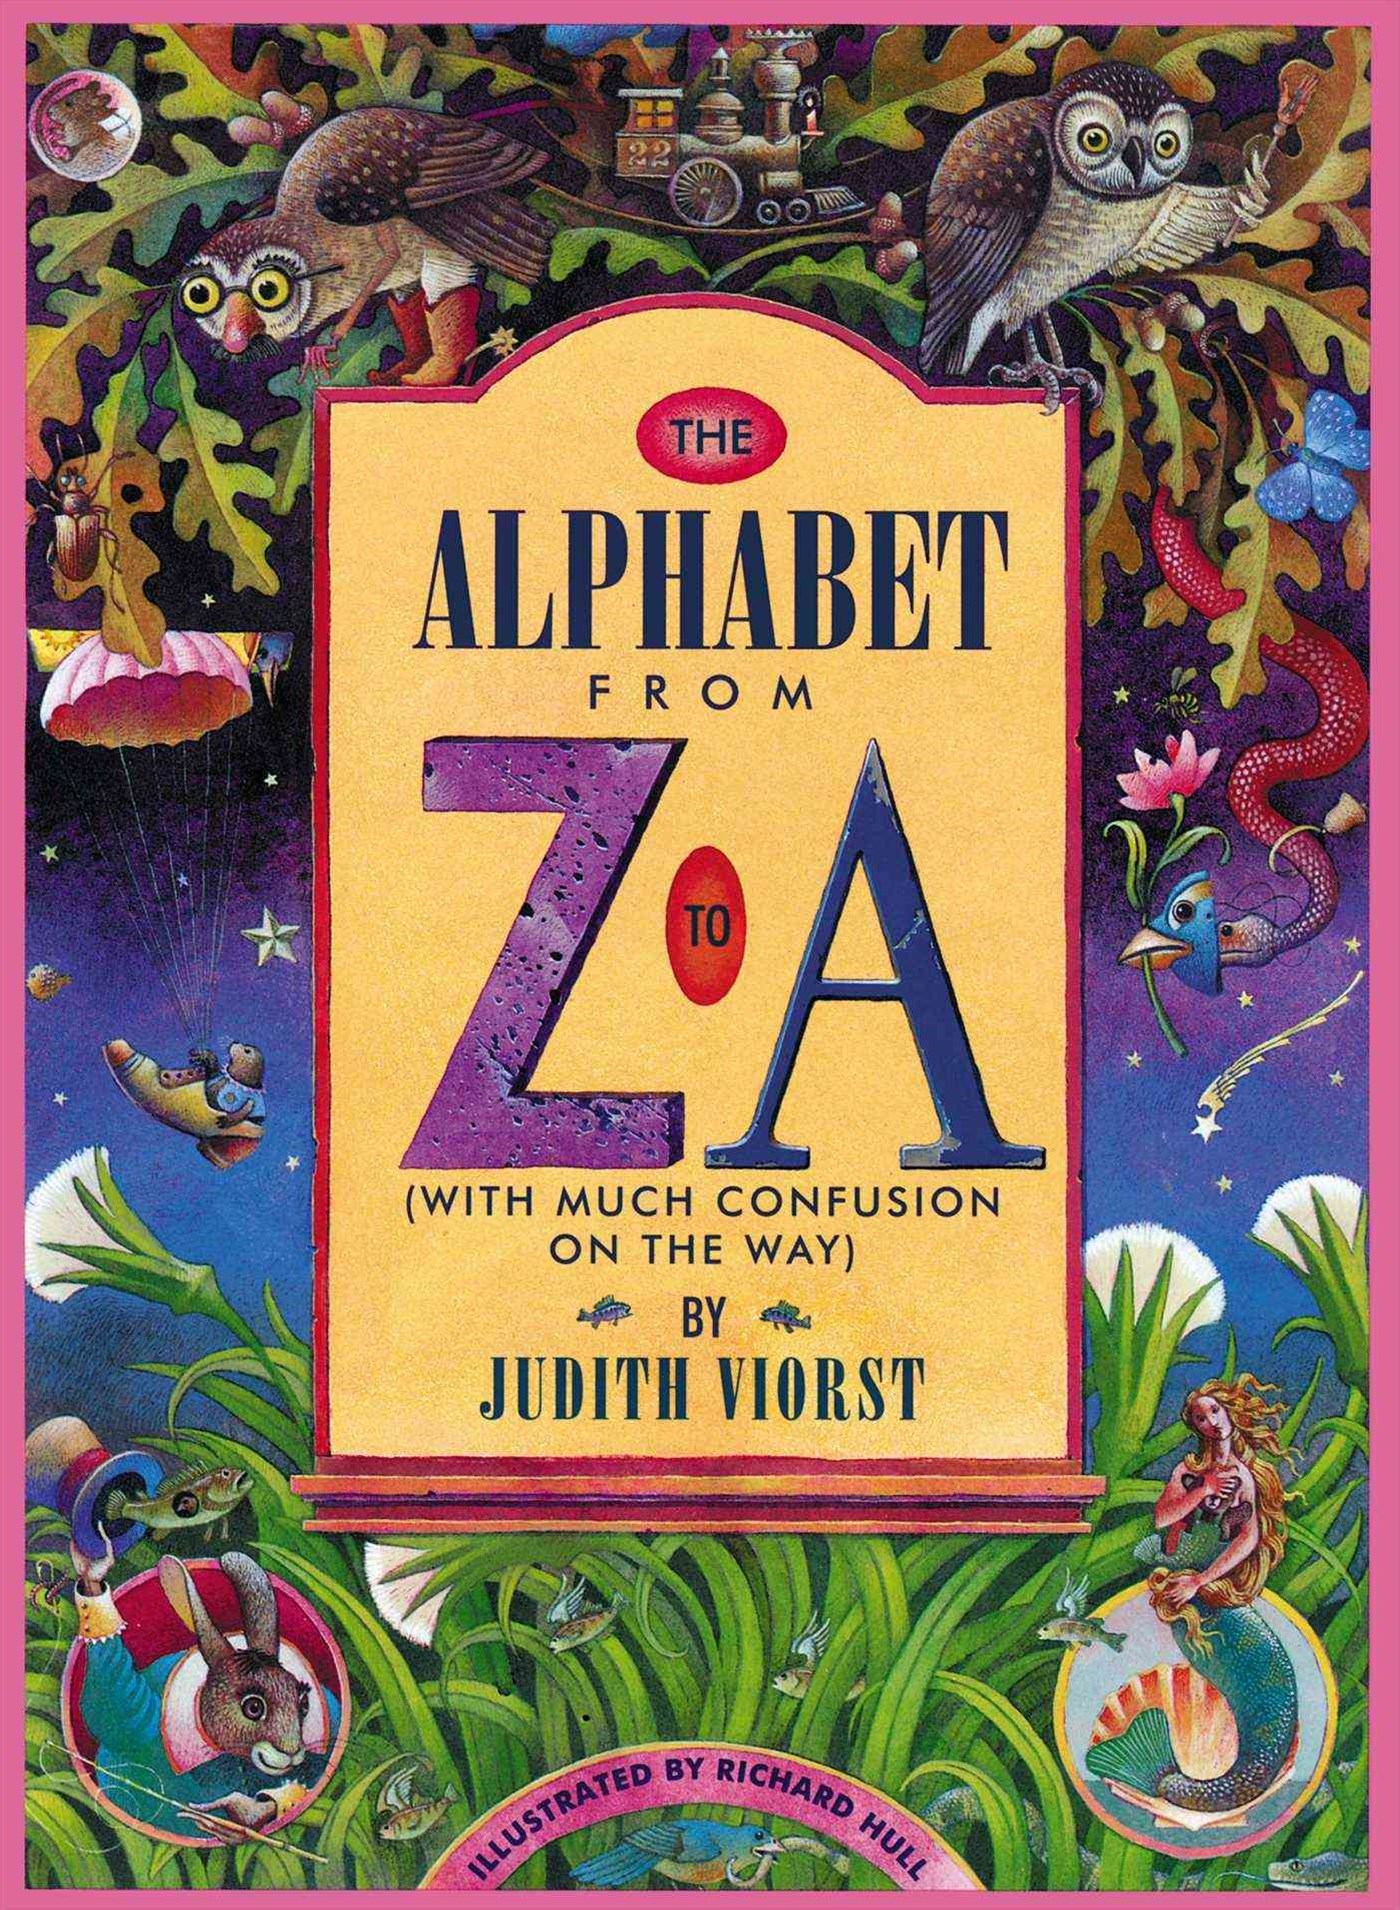 The Alphabet from Z to A